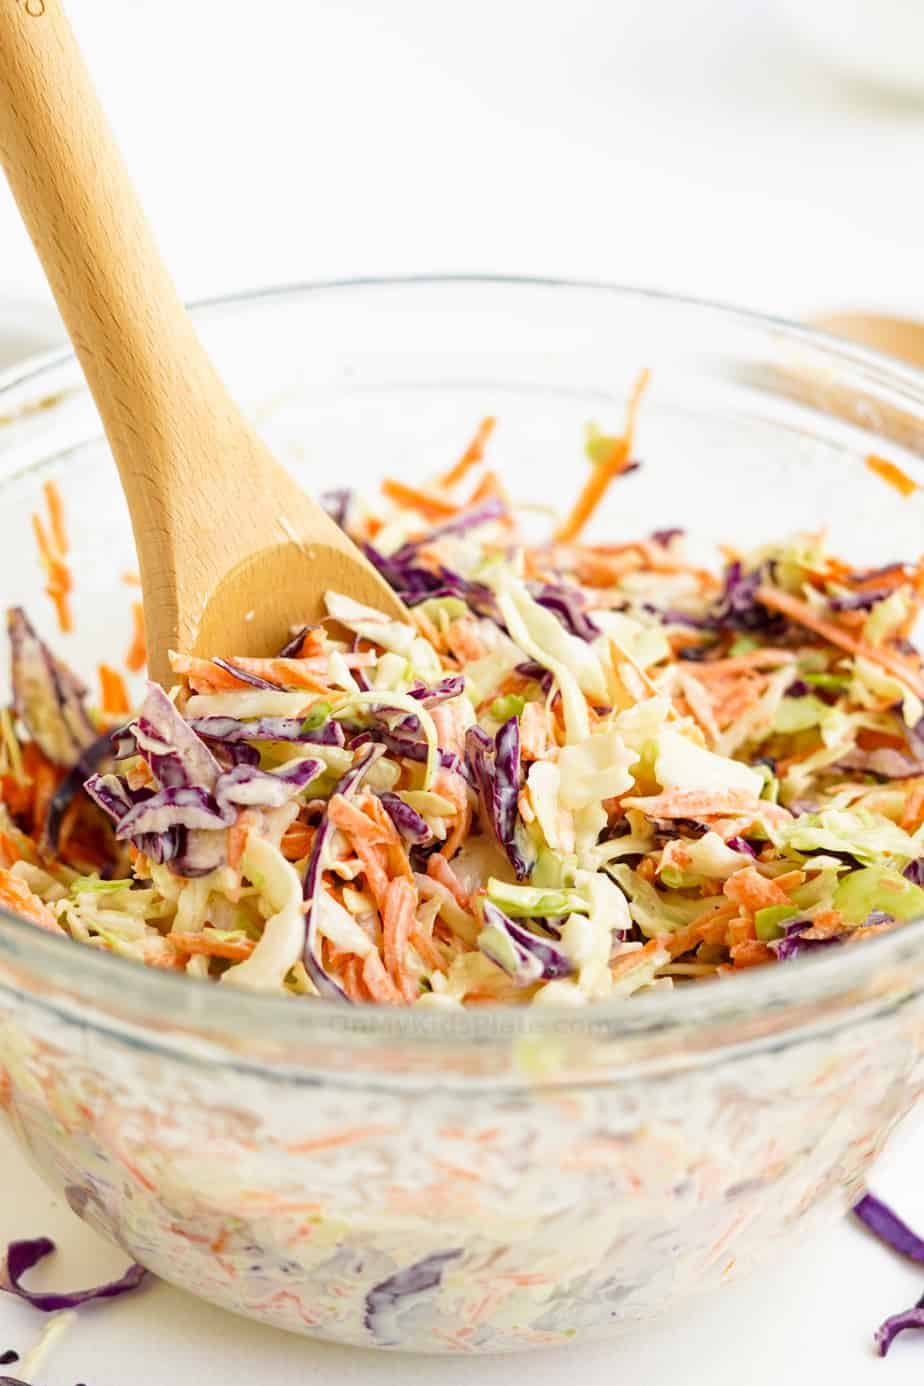 Mixing cabbage with dressing to make coleslaw in a large clear bowl from the side with a wooden spoon.